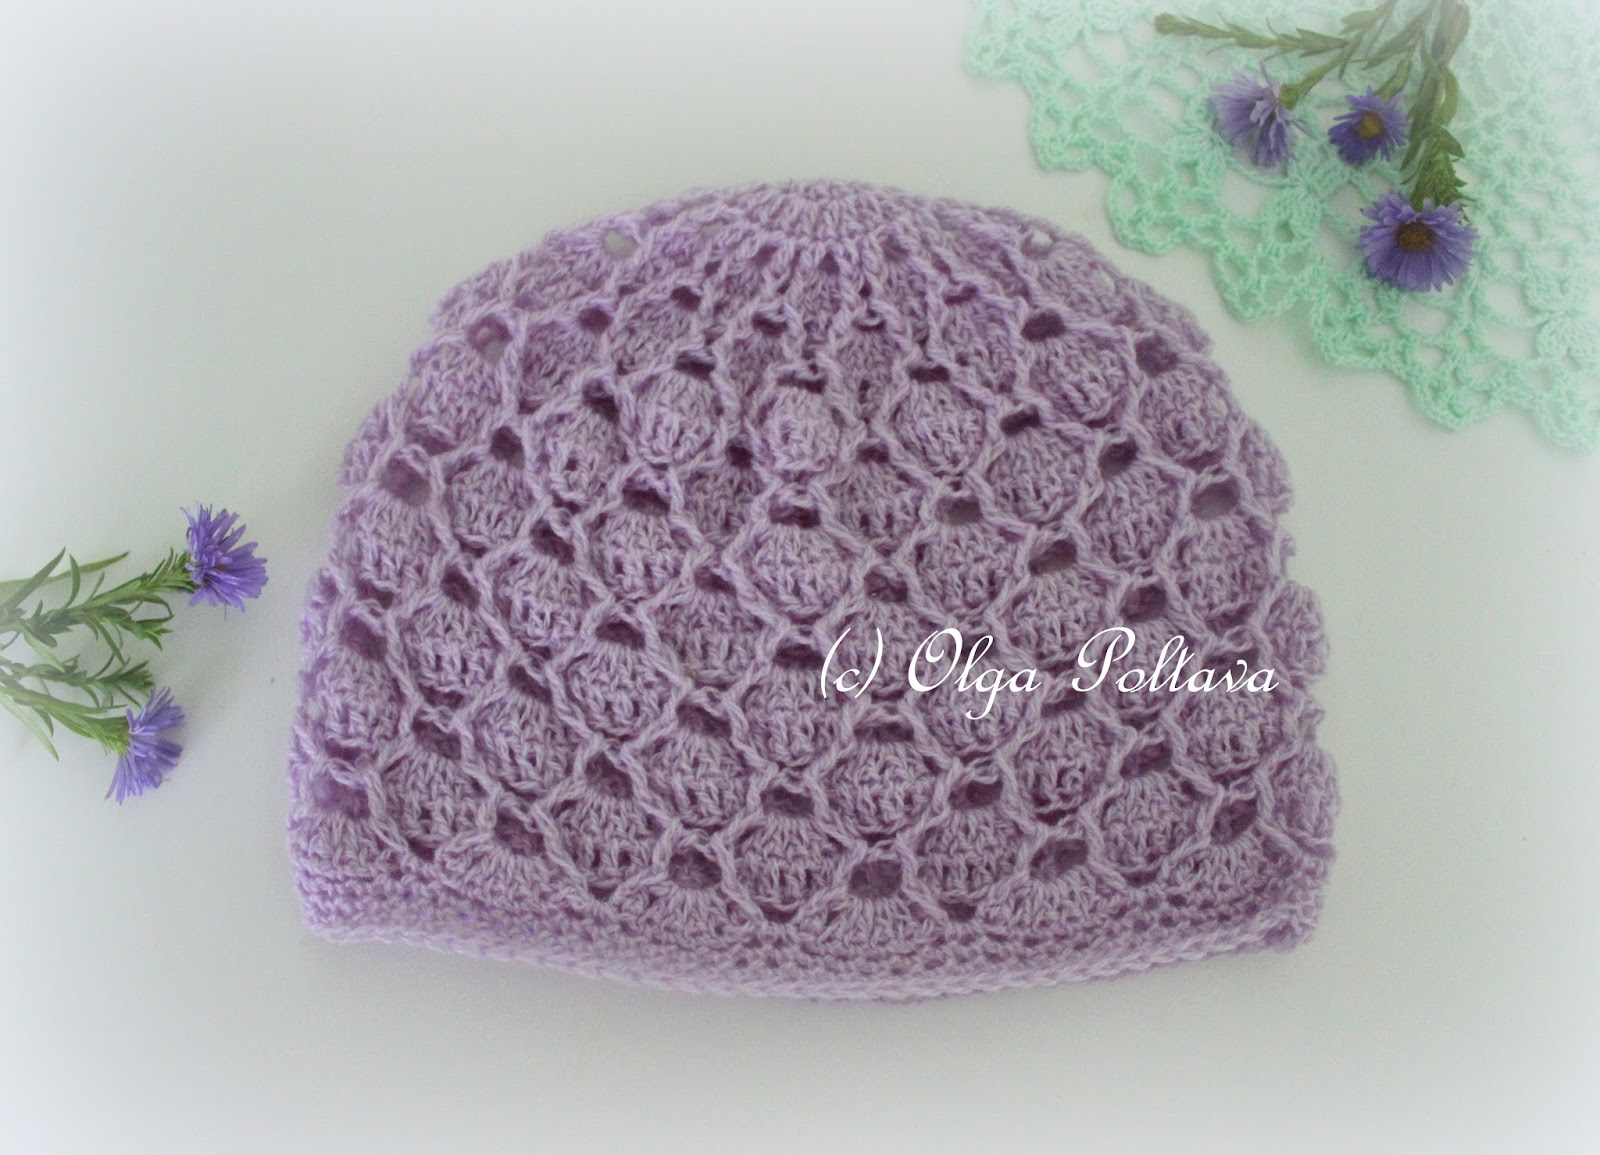 Lacy crochet delicate lace crochet baby hat free pattern from delicate lace crochet baby hat free pattern from pinterest bankloansurffo Image collections